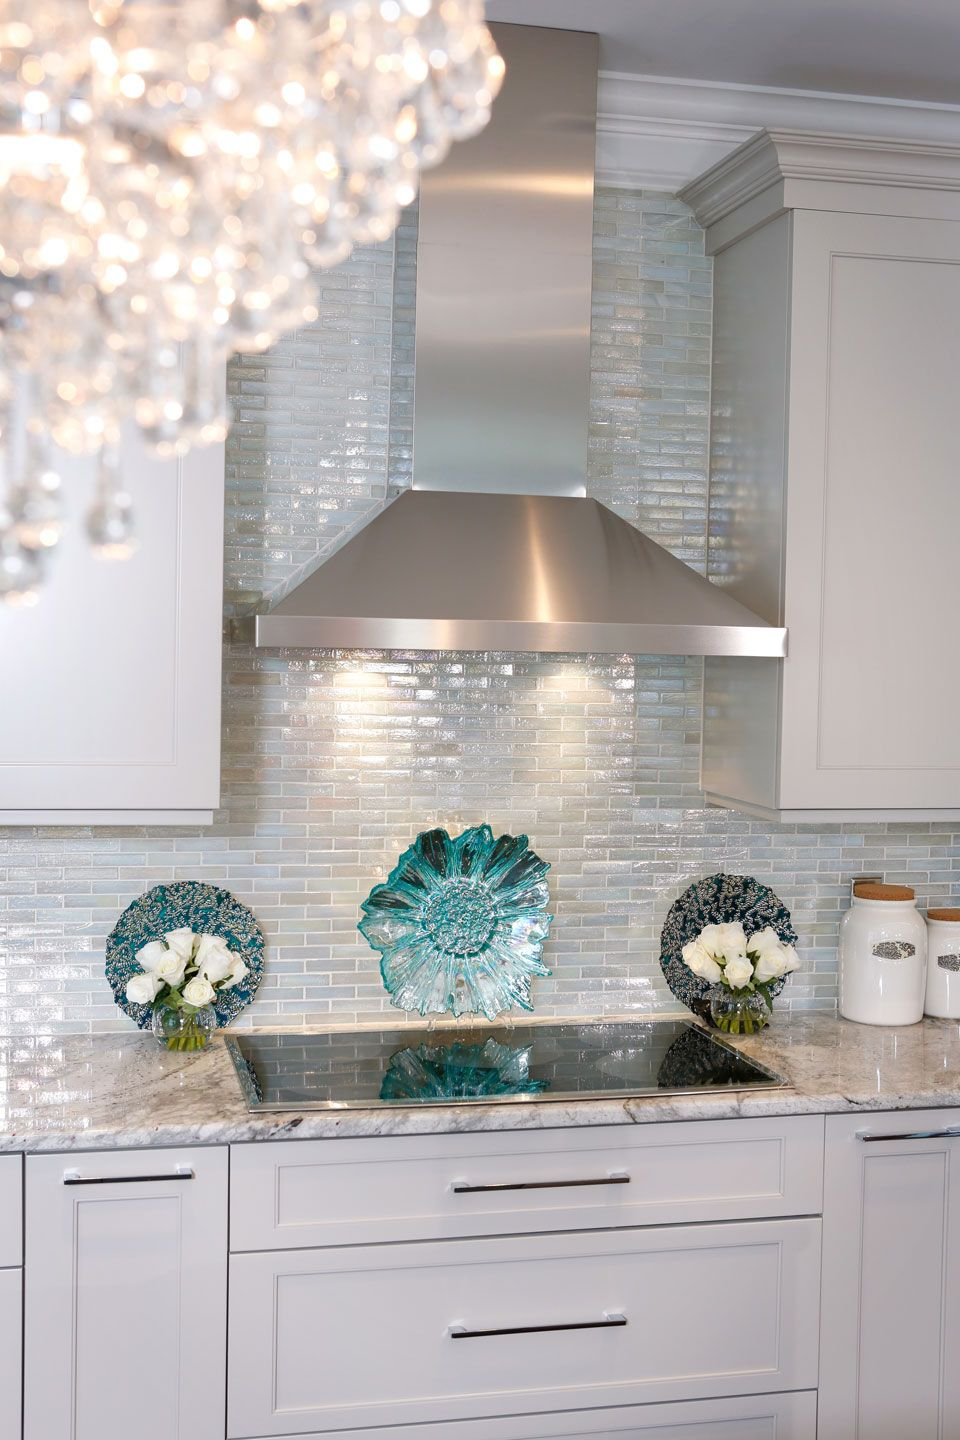 Glass Kitchen Backsplash Design For A Small Space Iridescent Tile By Lunada Bay Stainless Hood With Taupe Cabinets Color Looks Good